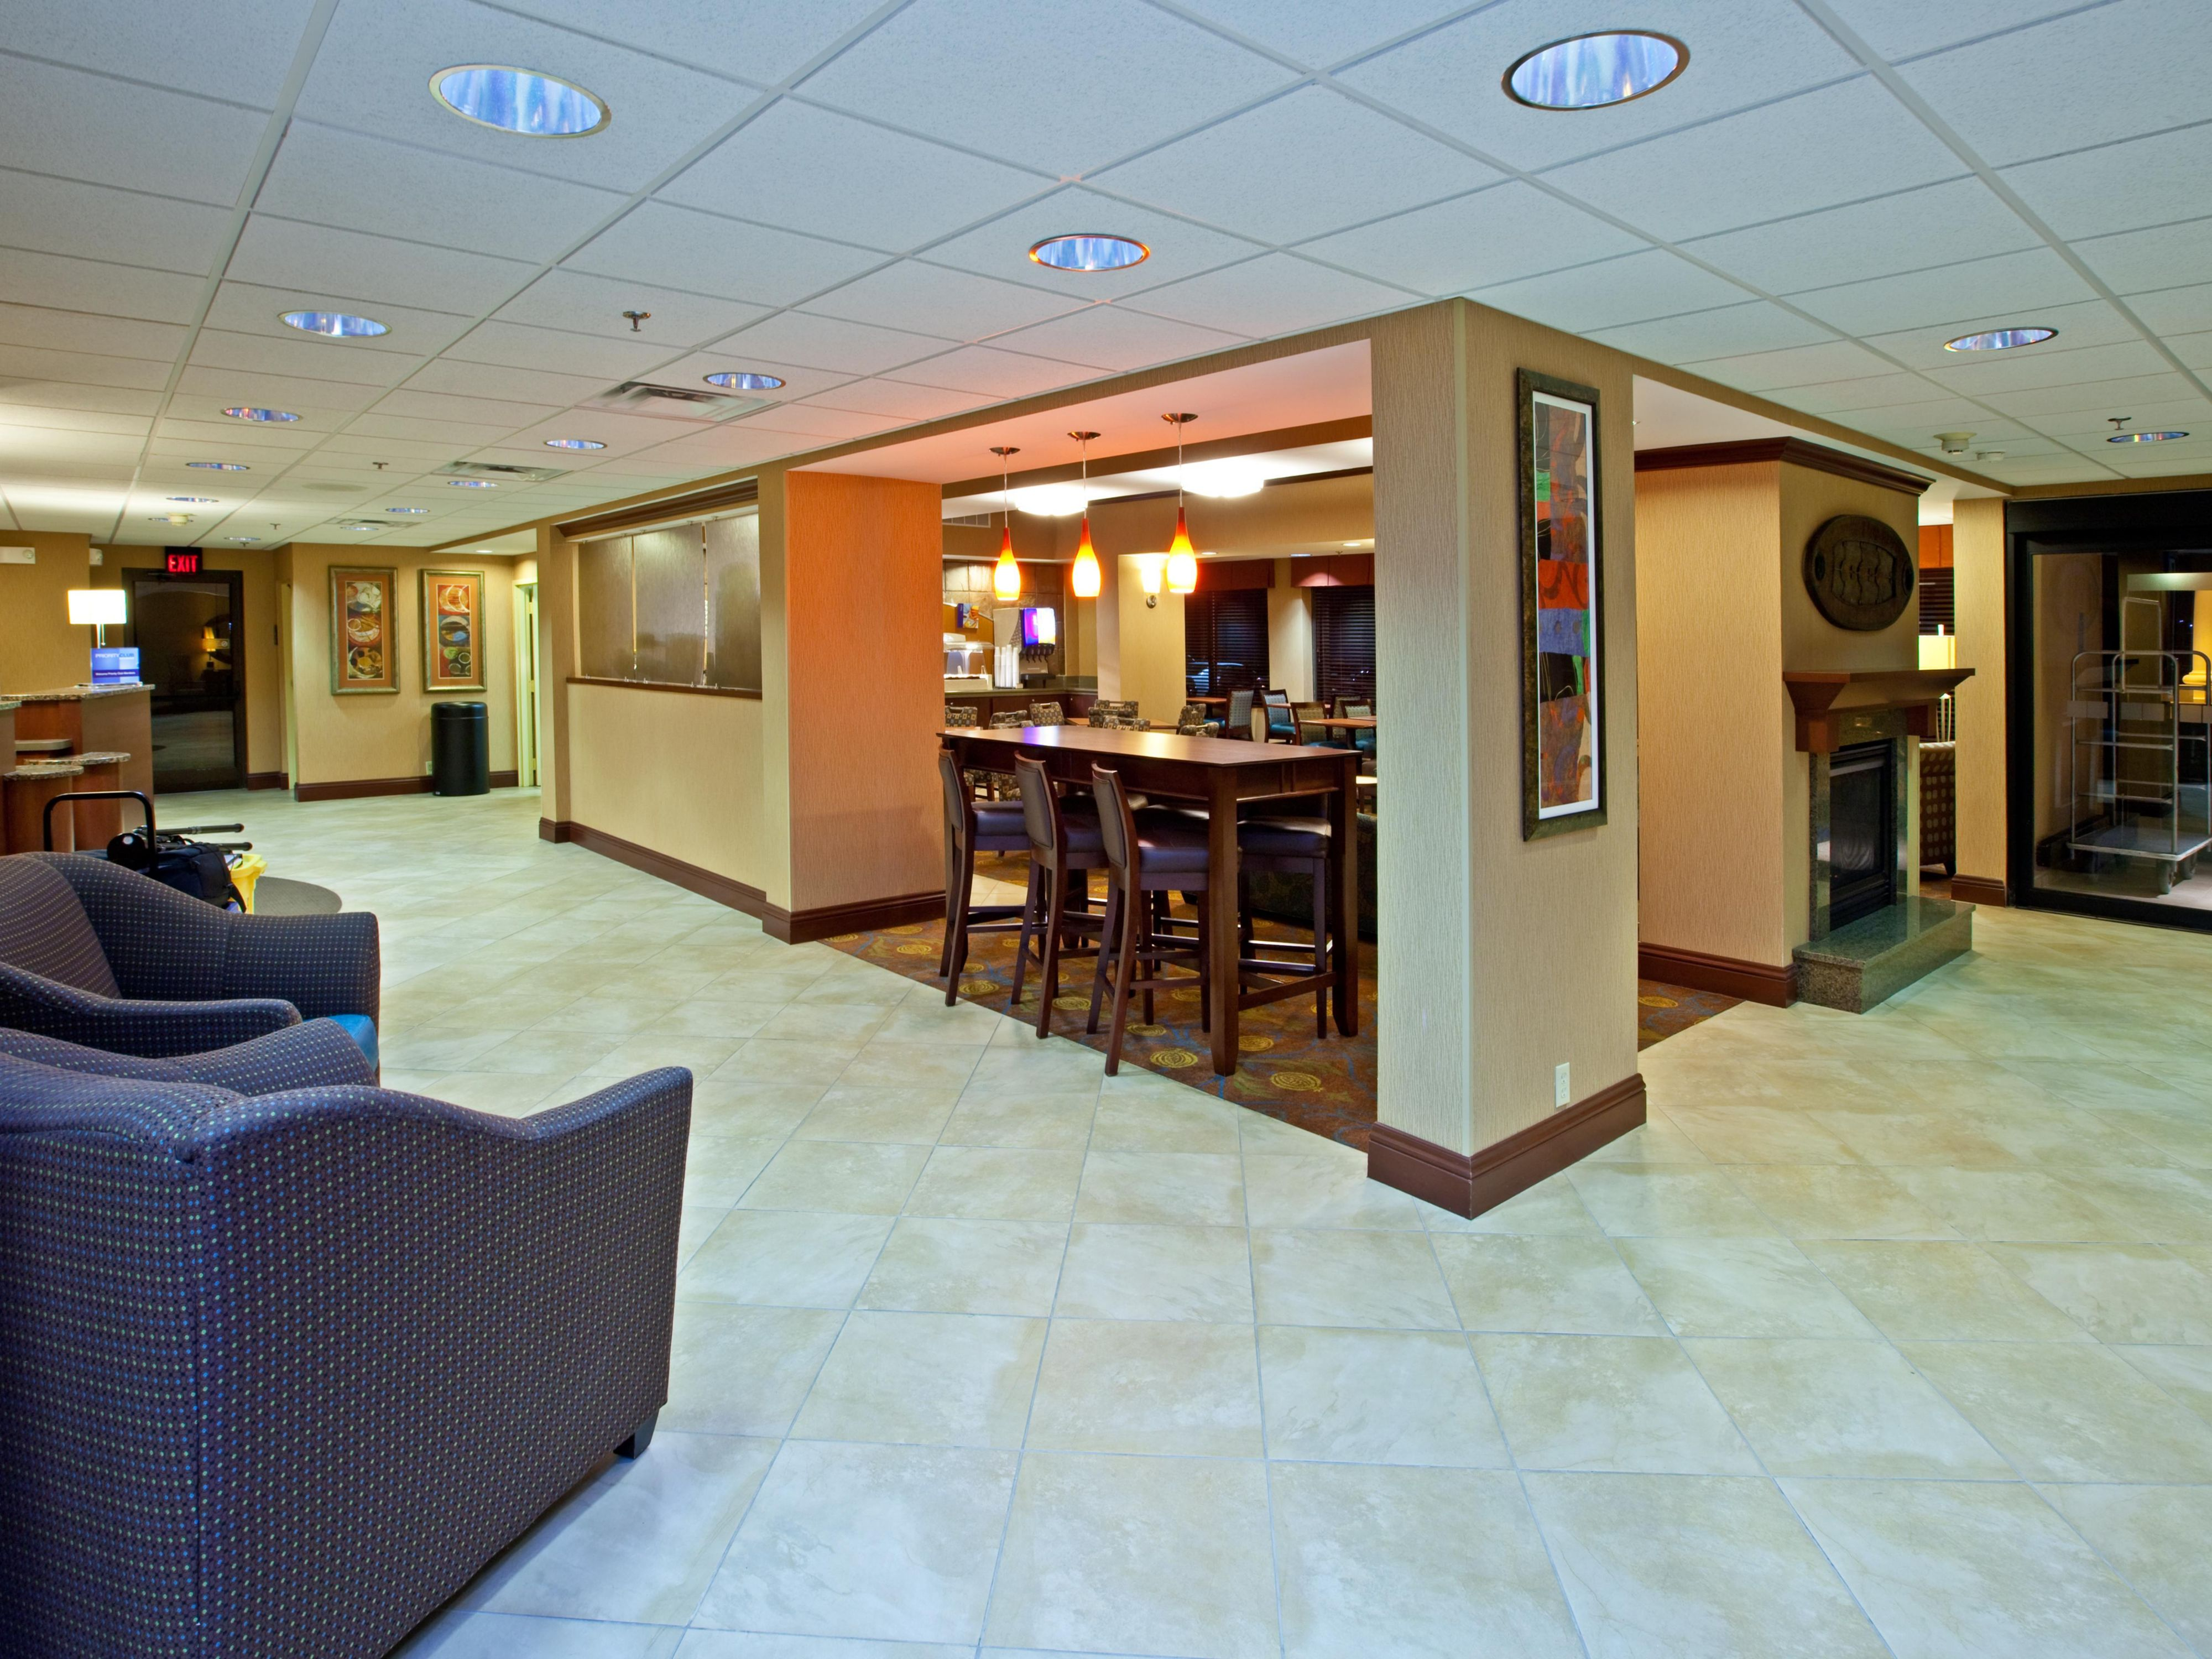 Meet up with your group in our comfortable lobby seating area